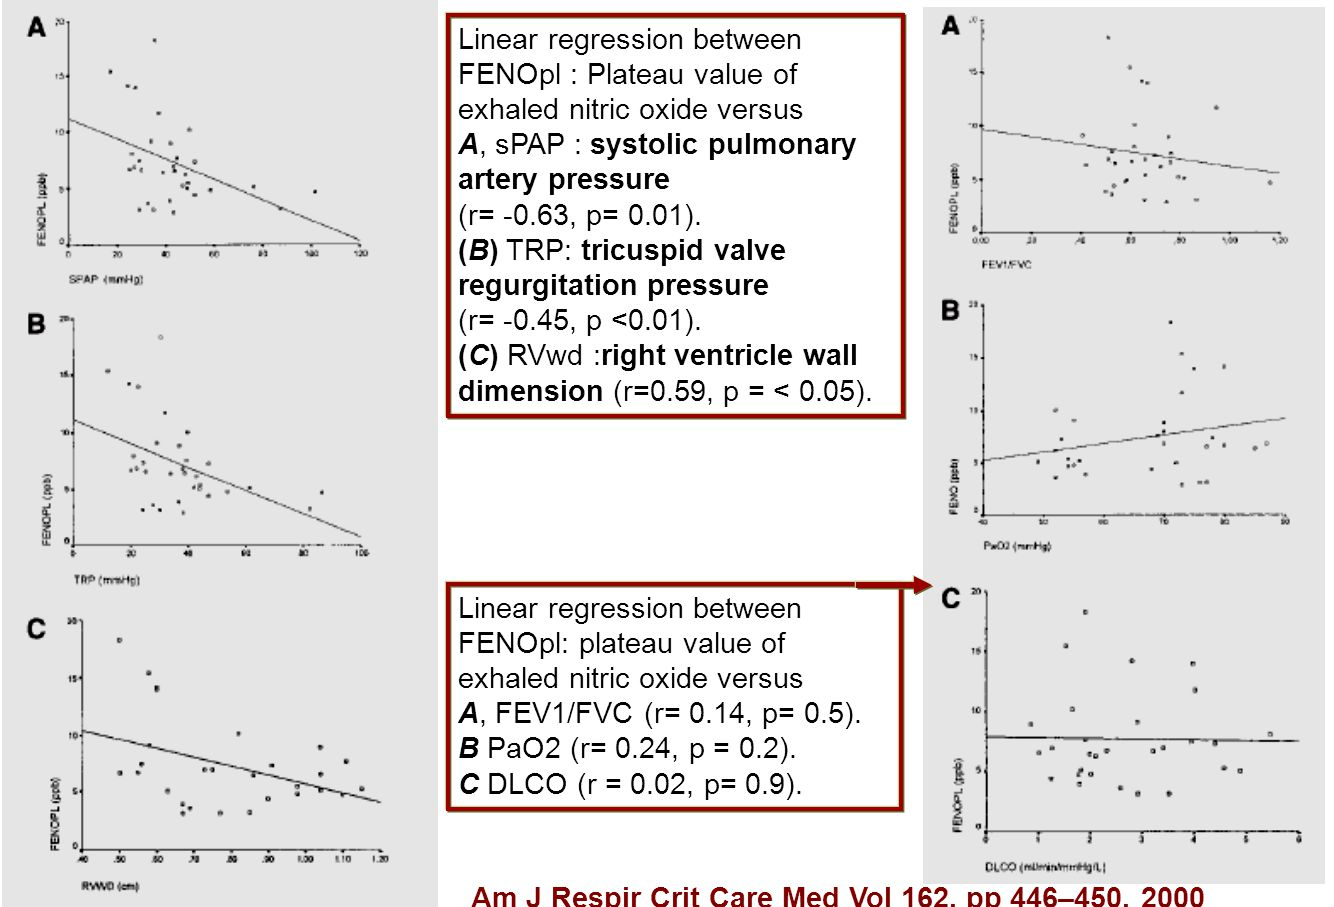 Linear regression between FENOpl : Plateau value of exhaled nitric oxide versus